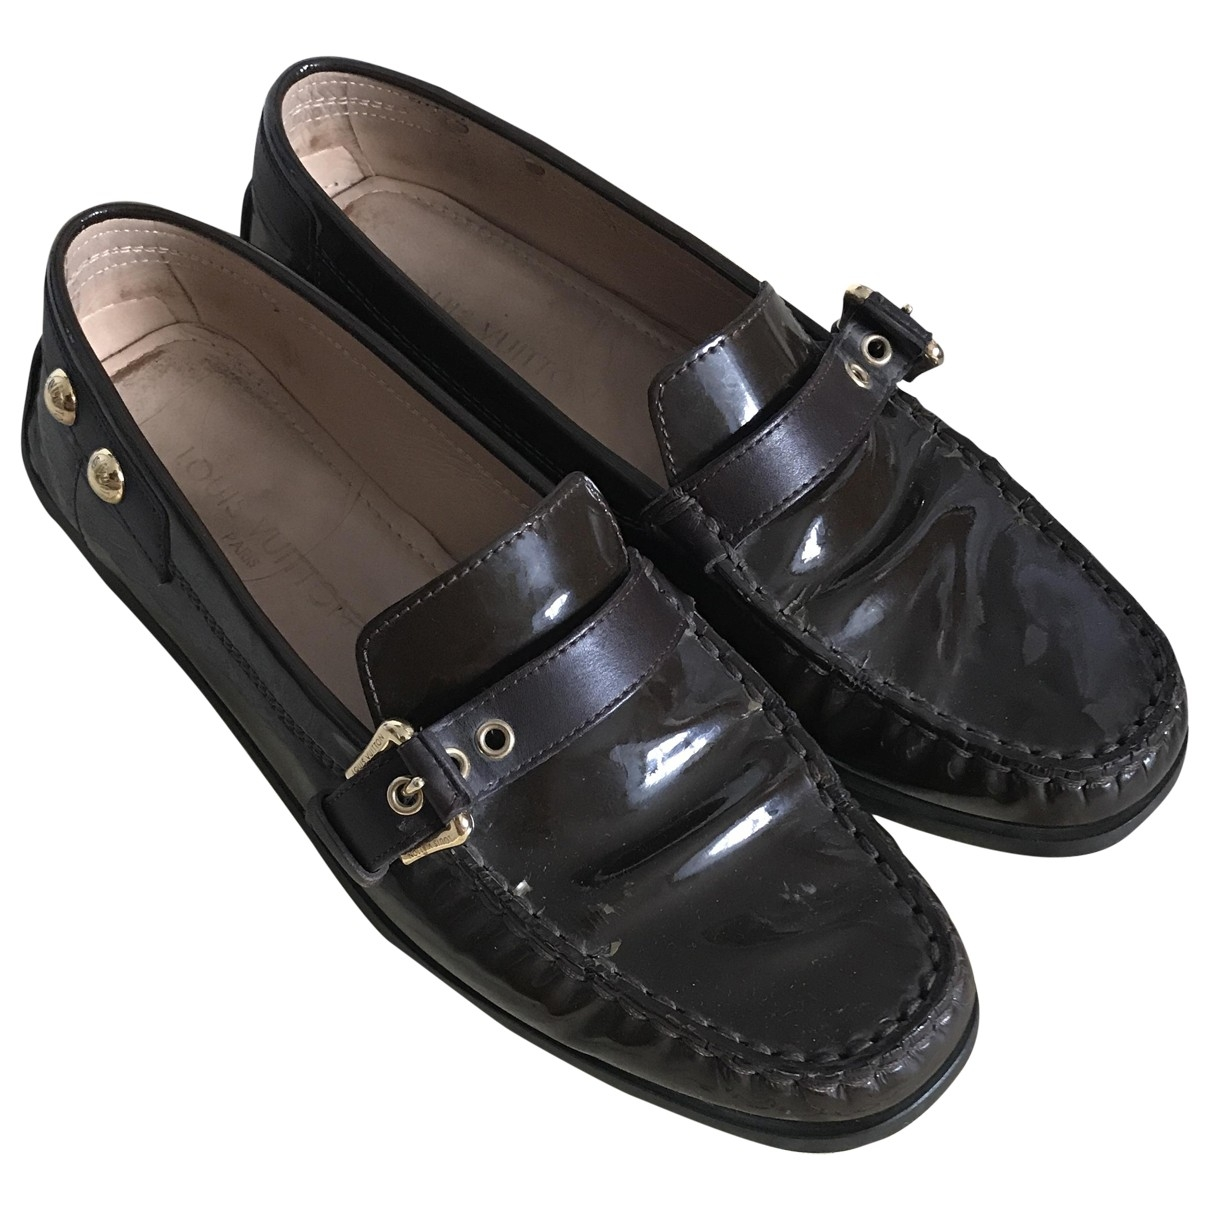 Louis Vuitton \N Brown Patent leather Flats for Women 37 EU